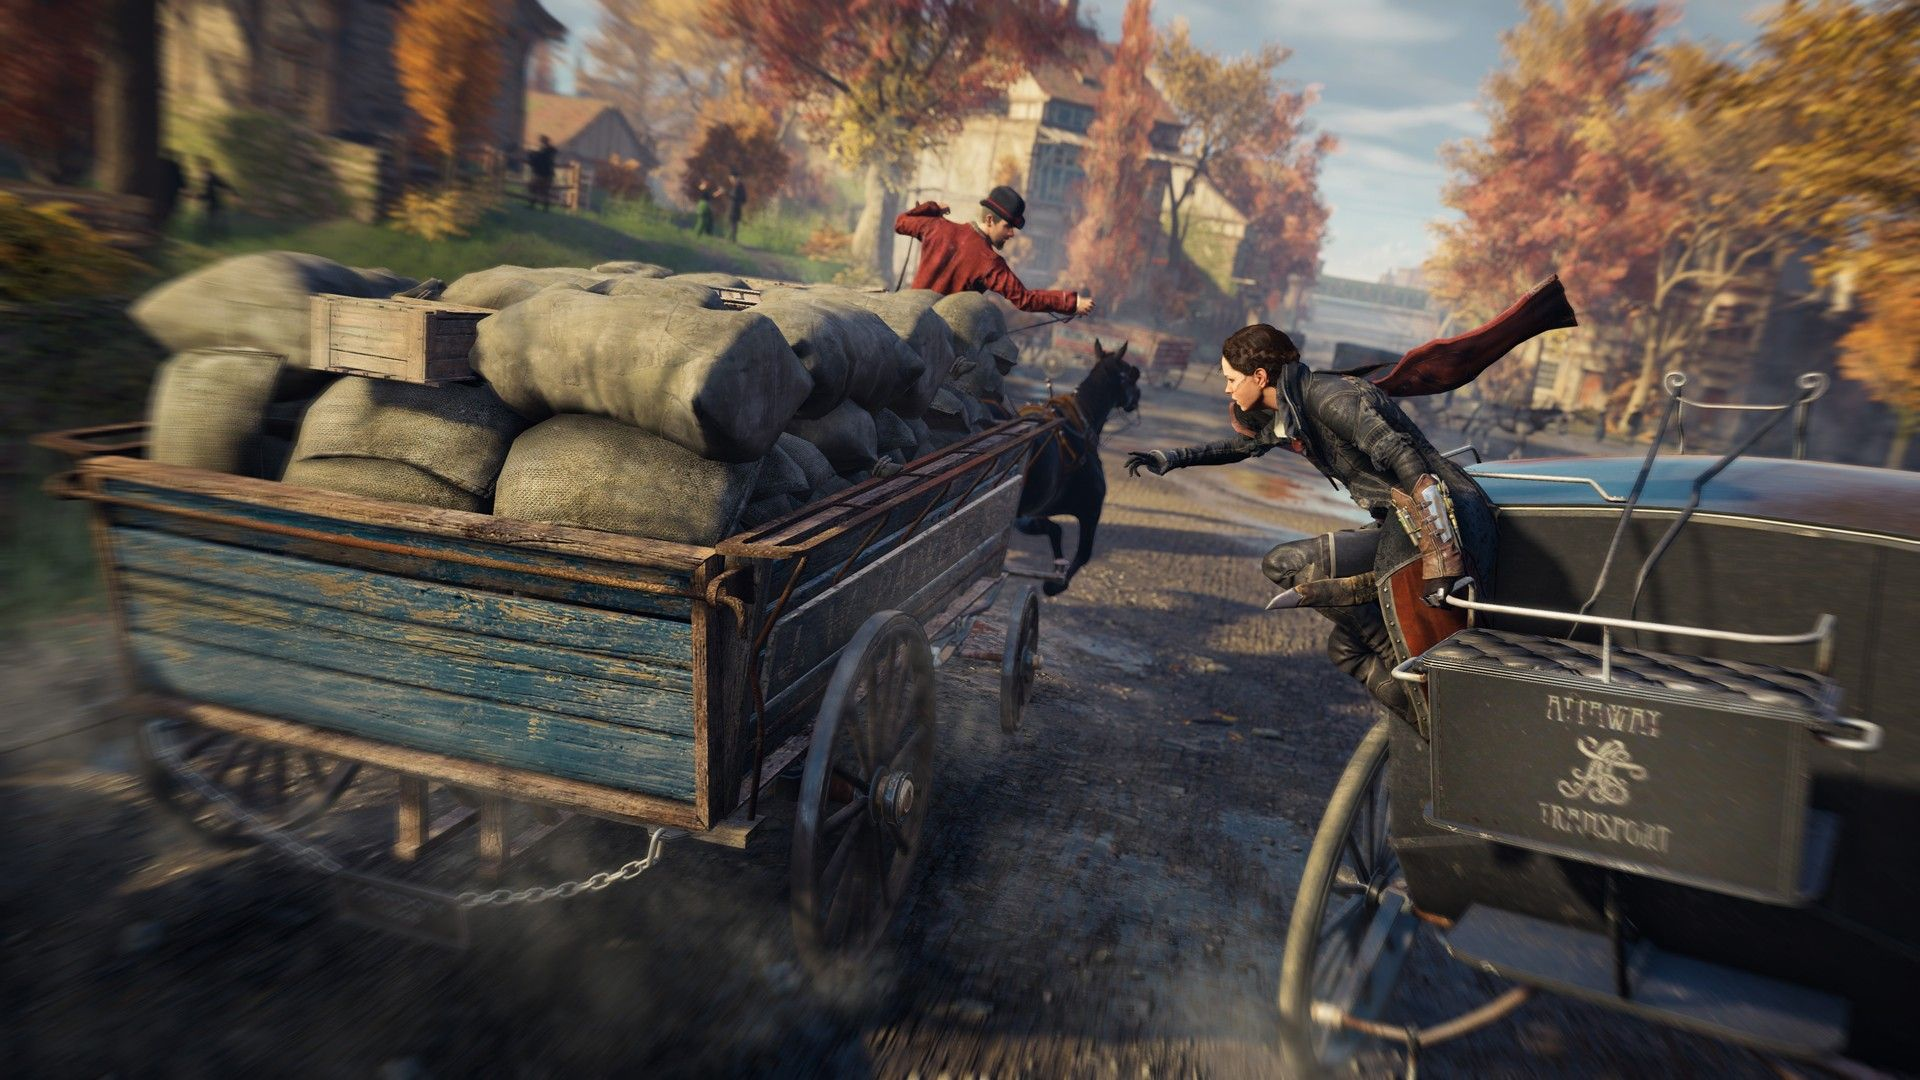 Скриншот *Assassin's Creed: Syndicate [PS4] 5.05 / 6.72 / 7.02 [EUR] (2015) [Русский] (v1.52)*